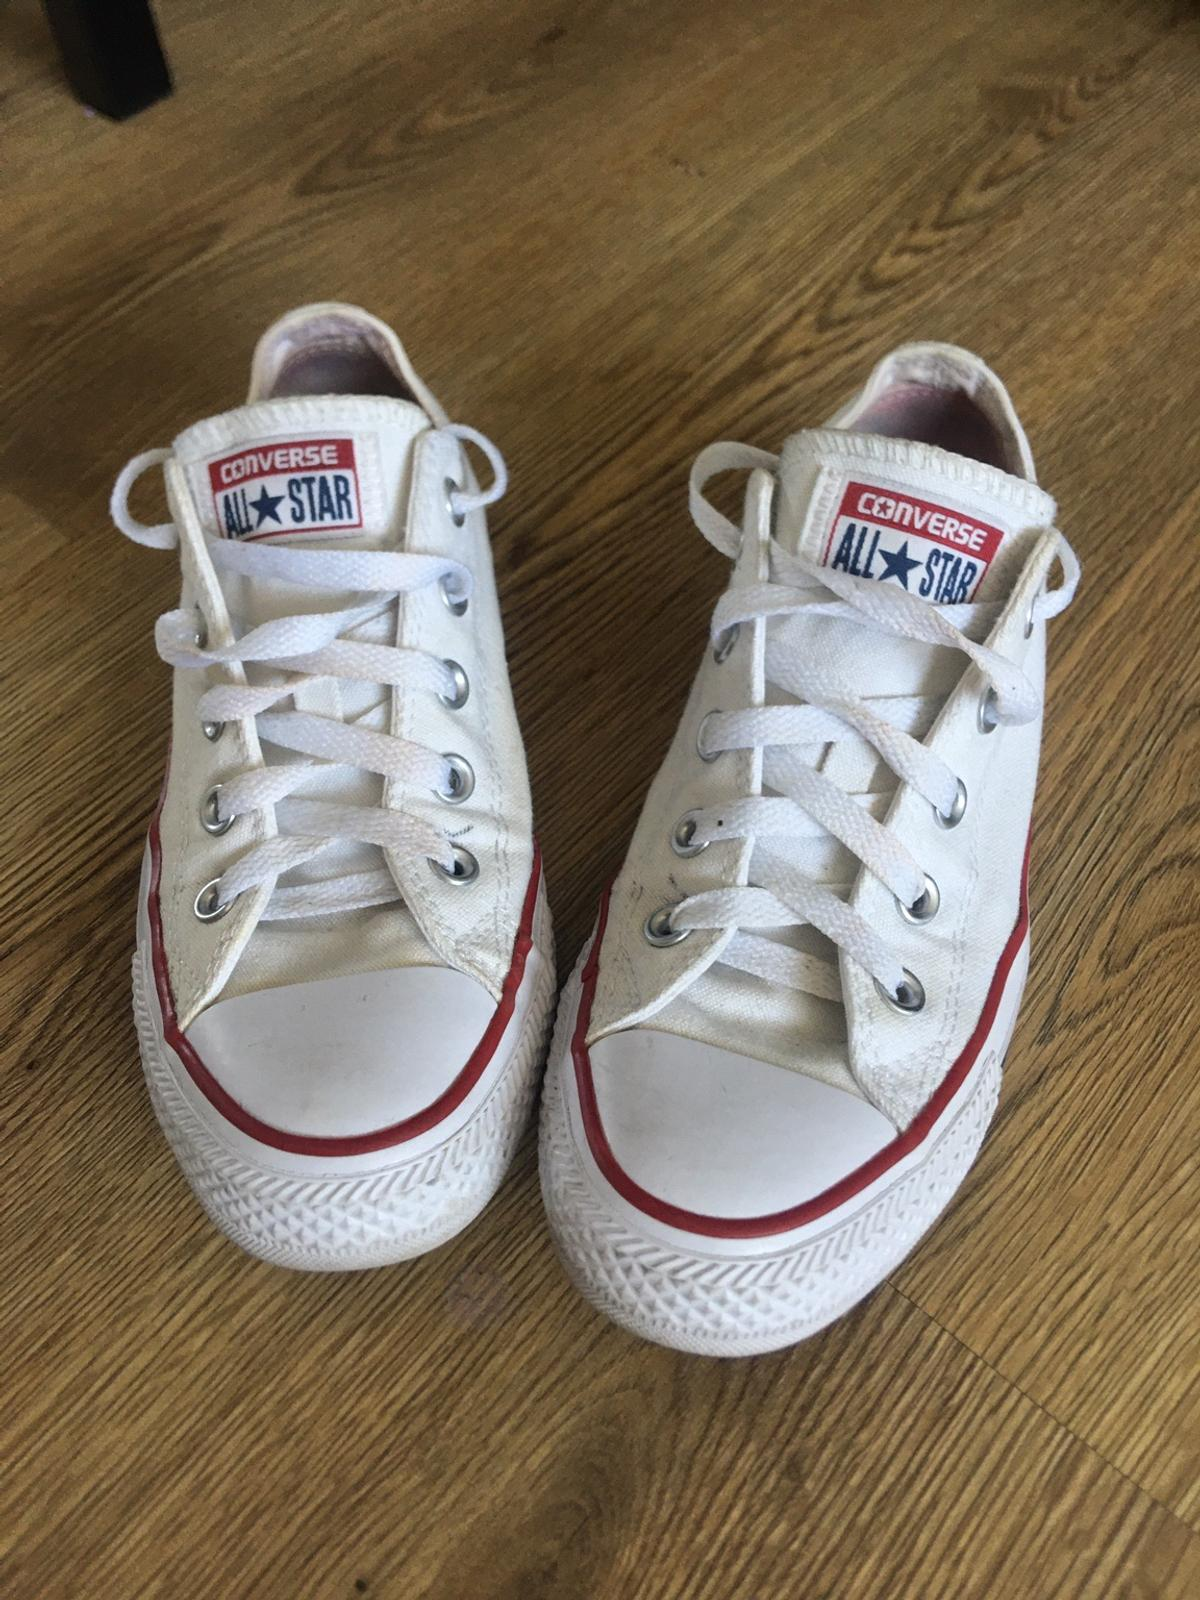 Converse trainers in very good condition, size 4